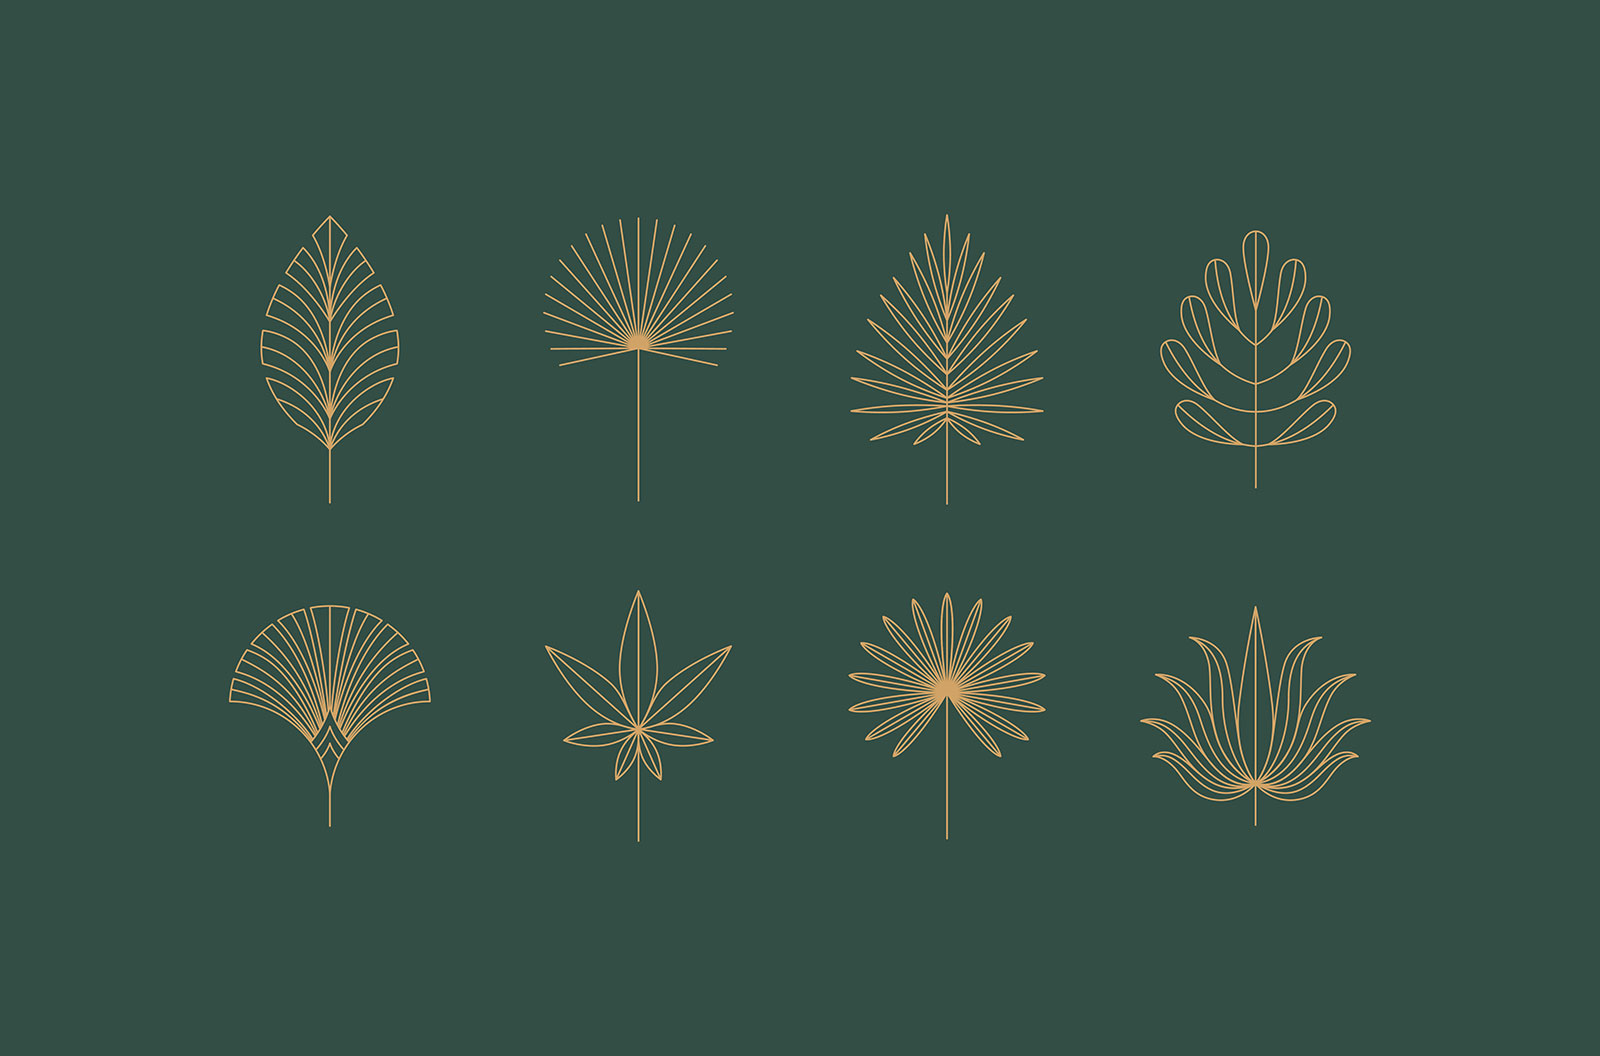 Vector set of linear boho icons and symbols - floral designs